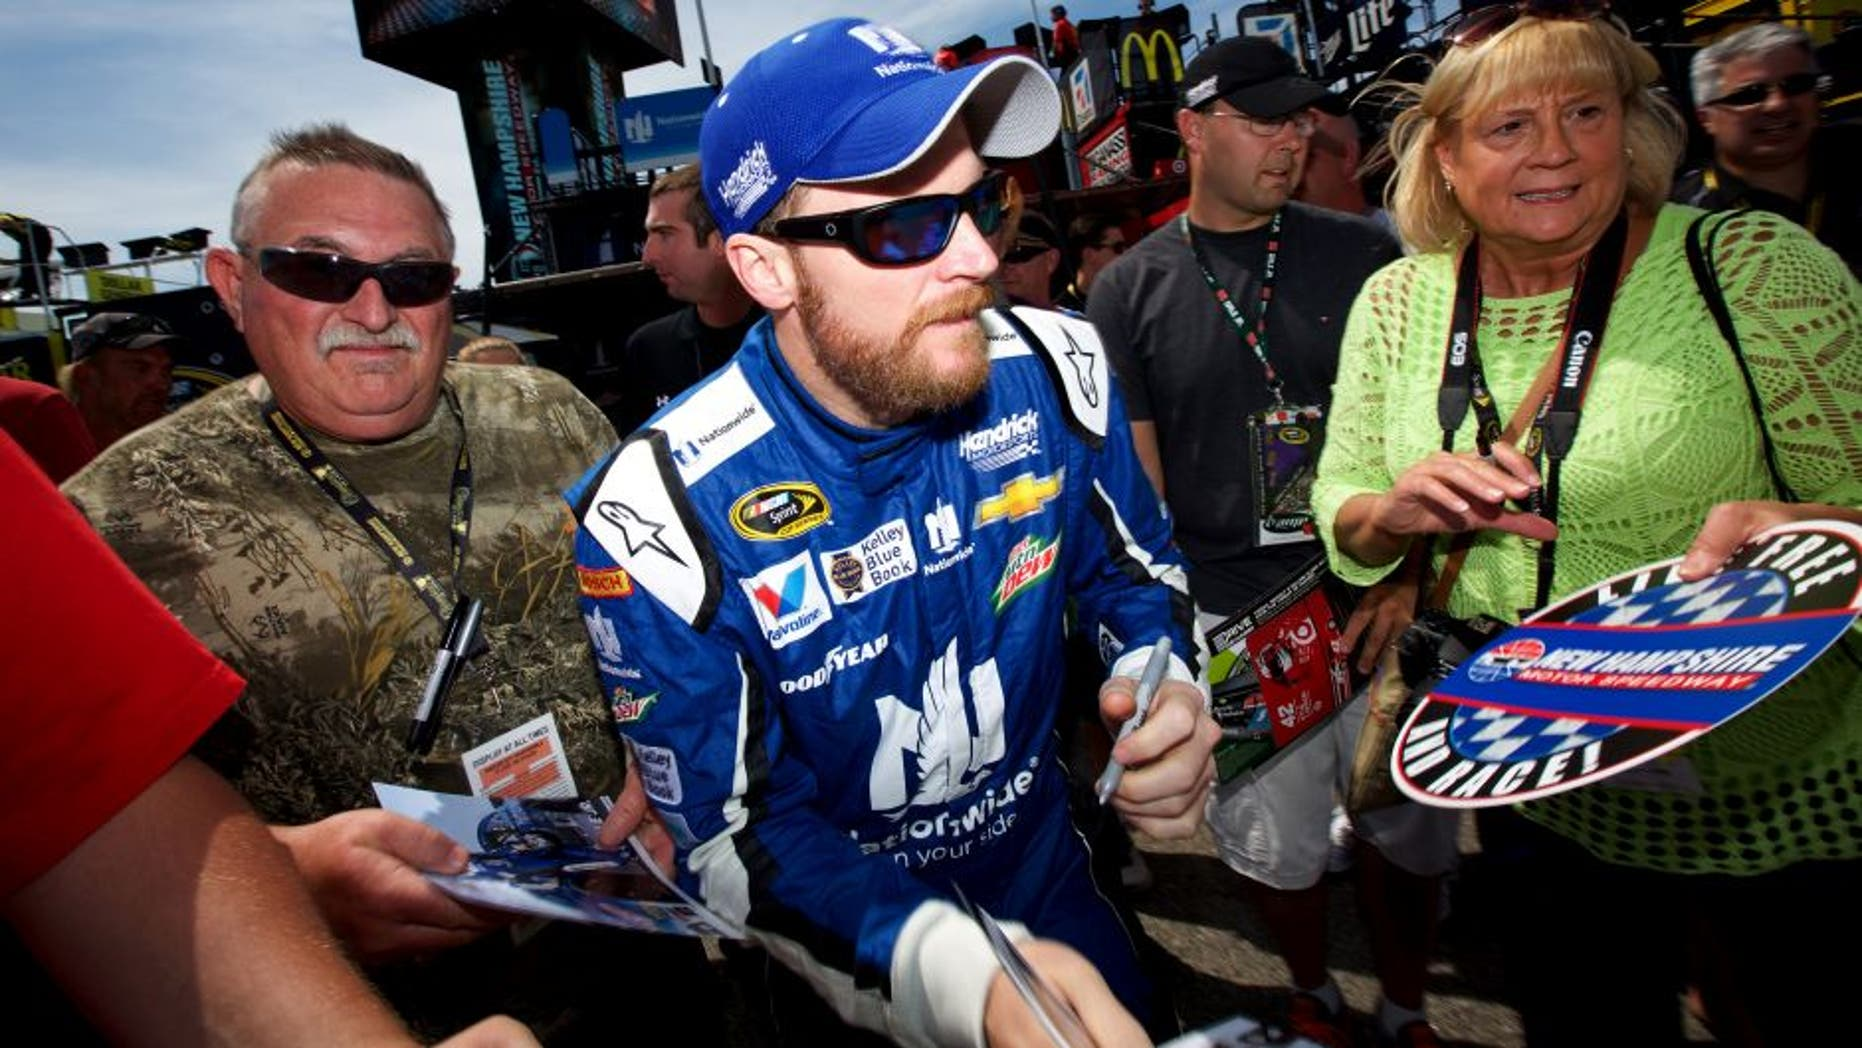 LOUDON, NH - JULY 17: Dale Earnhardt Jr., driver of the #88 Nationwide Chevrolet, signs autographs for fans during practice for the NASCAR Sprint Cup Series 5-Hour Energy 301 at New Hampshire Motor Speedway on July 17, 2015 in Loudon, New Hampshire. (Photo by Nick Laham/Getty Images)